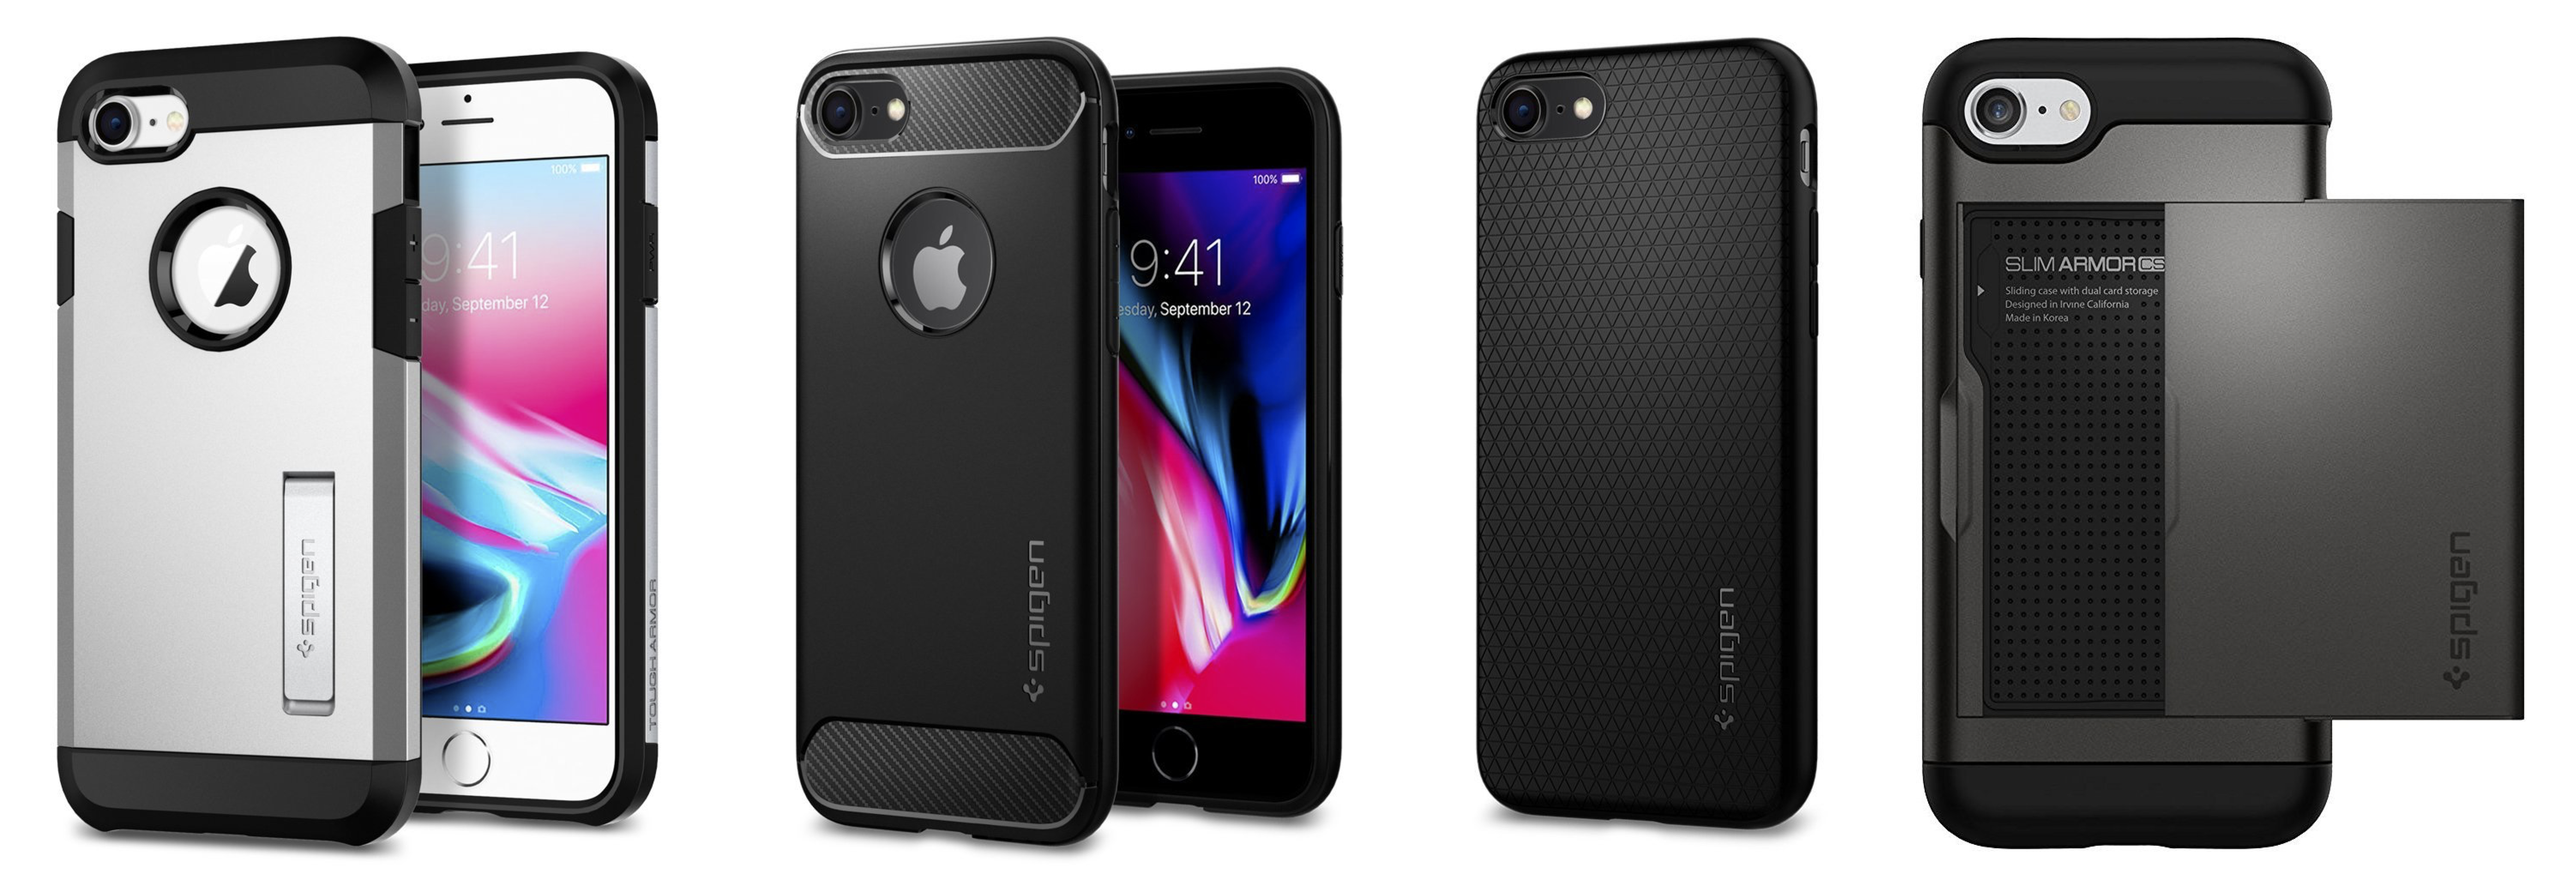 super popular 8f59a 8d84e Spigen's new iPhone 8 and iPhone 8 Plus cases shipping now for ...